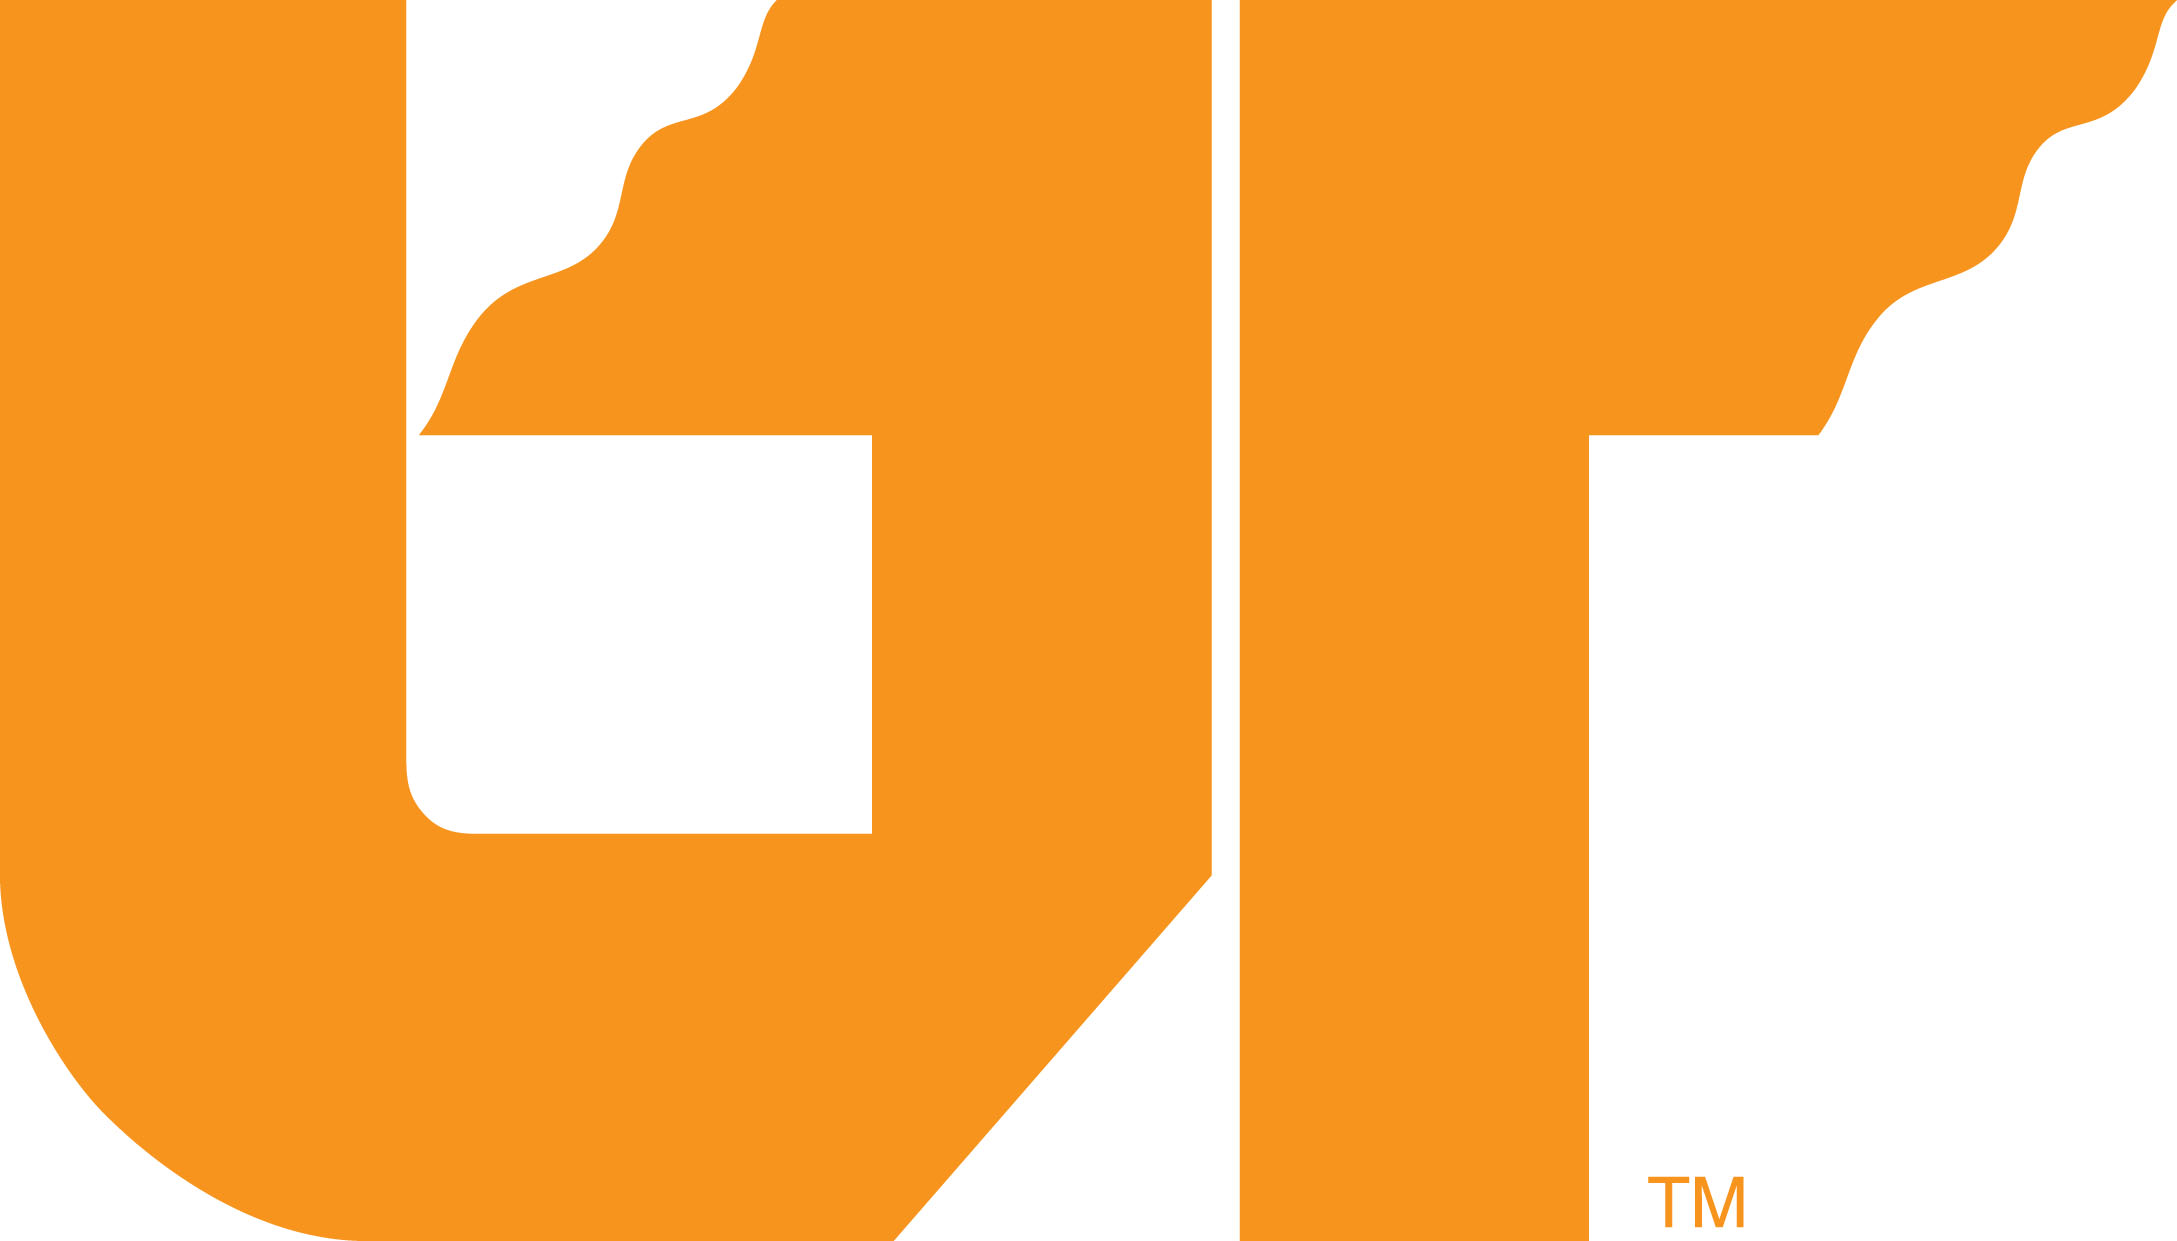 The University of Tennessee.